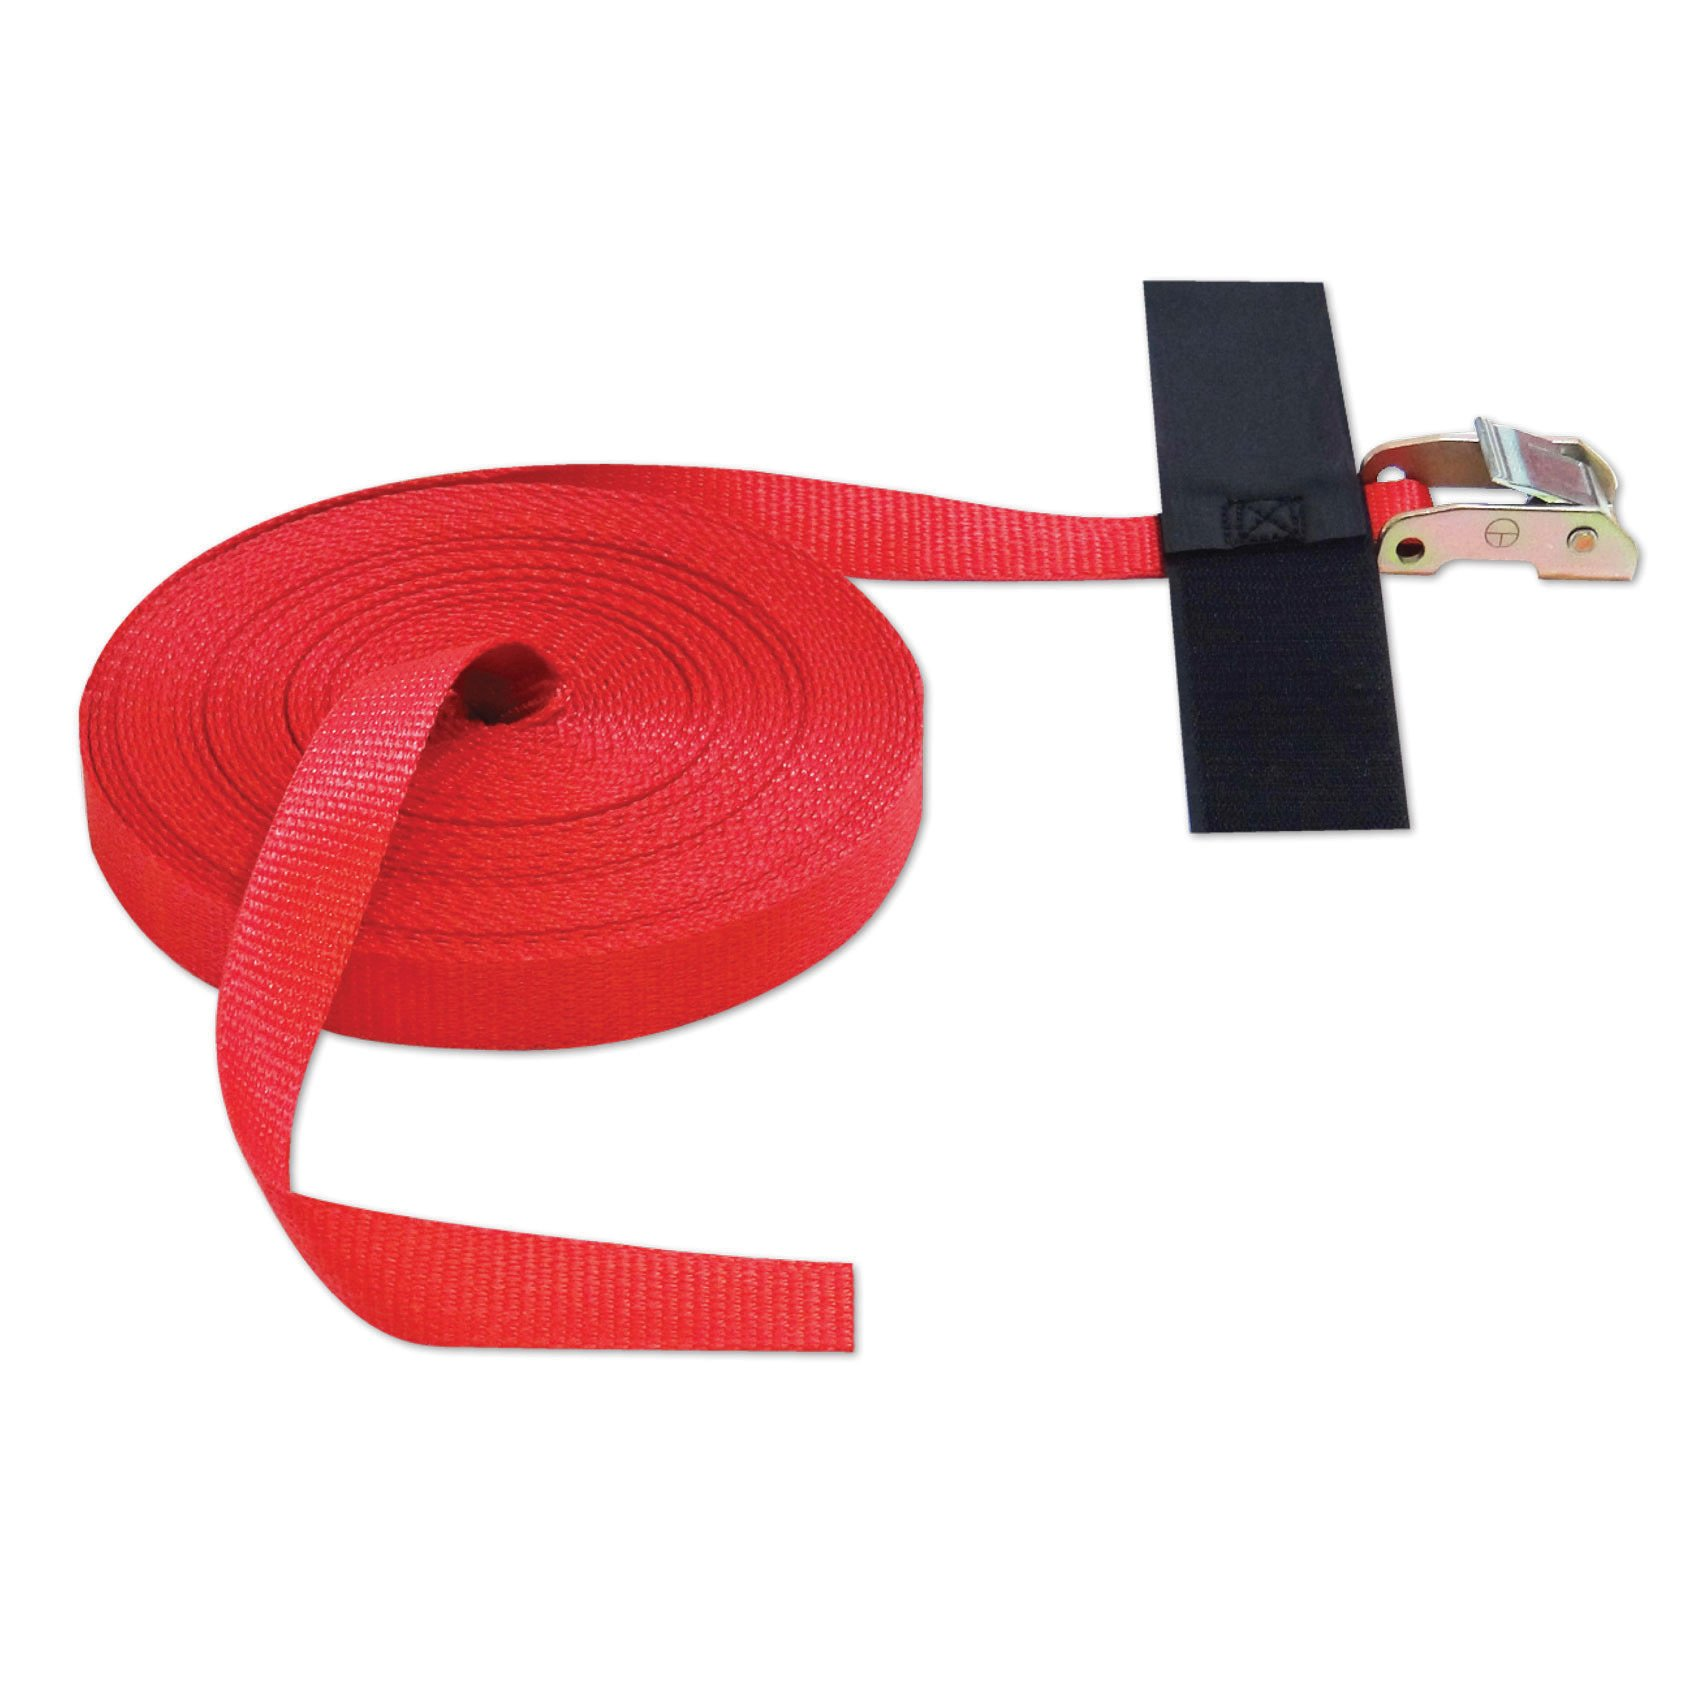 CINCH STRAP 1''x50' CAM (USA!) with Hook & Loop Storage Fastener